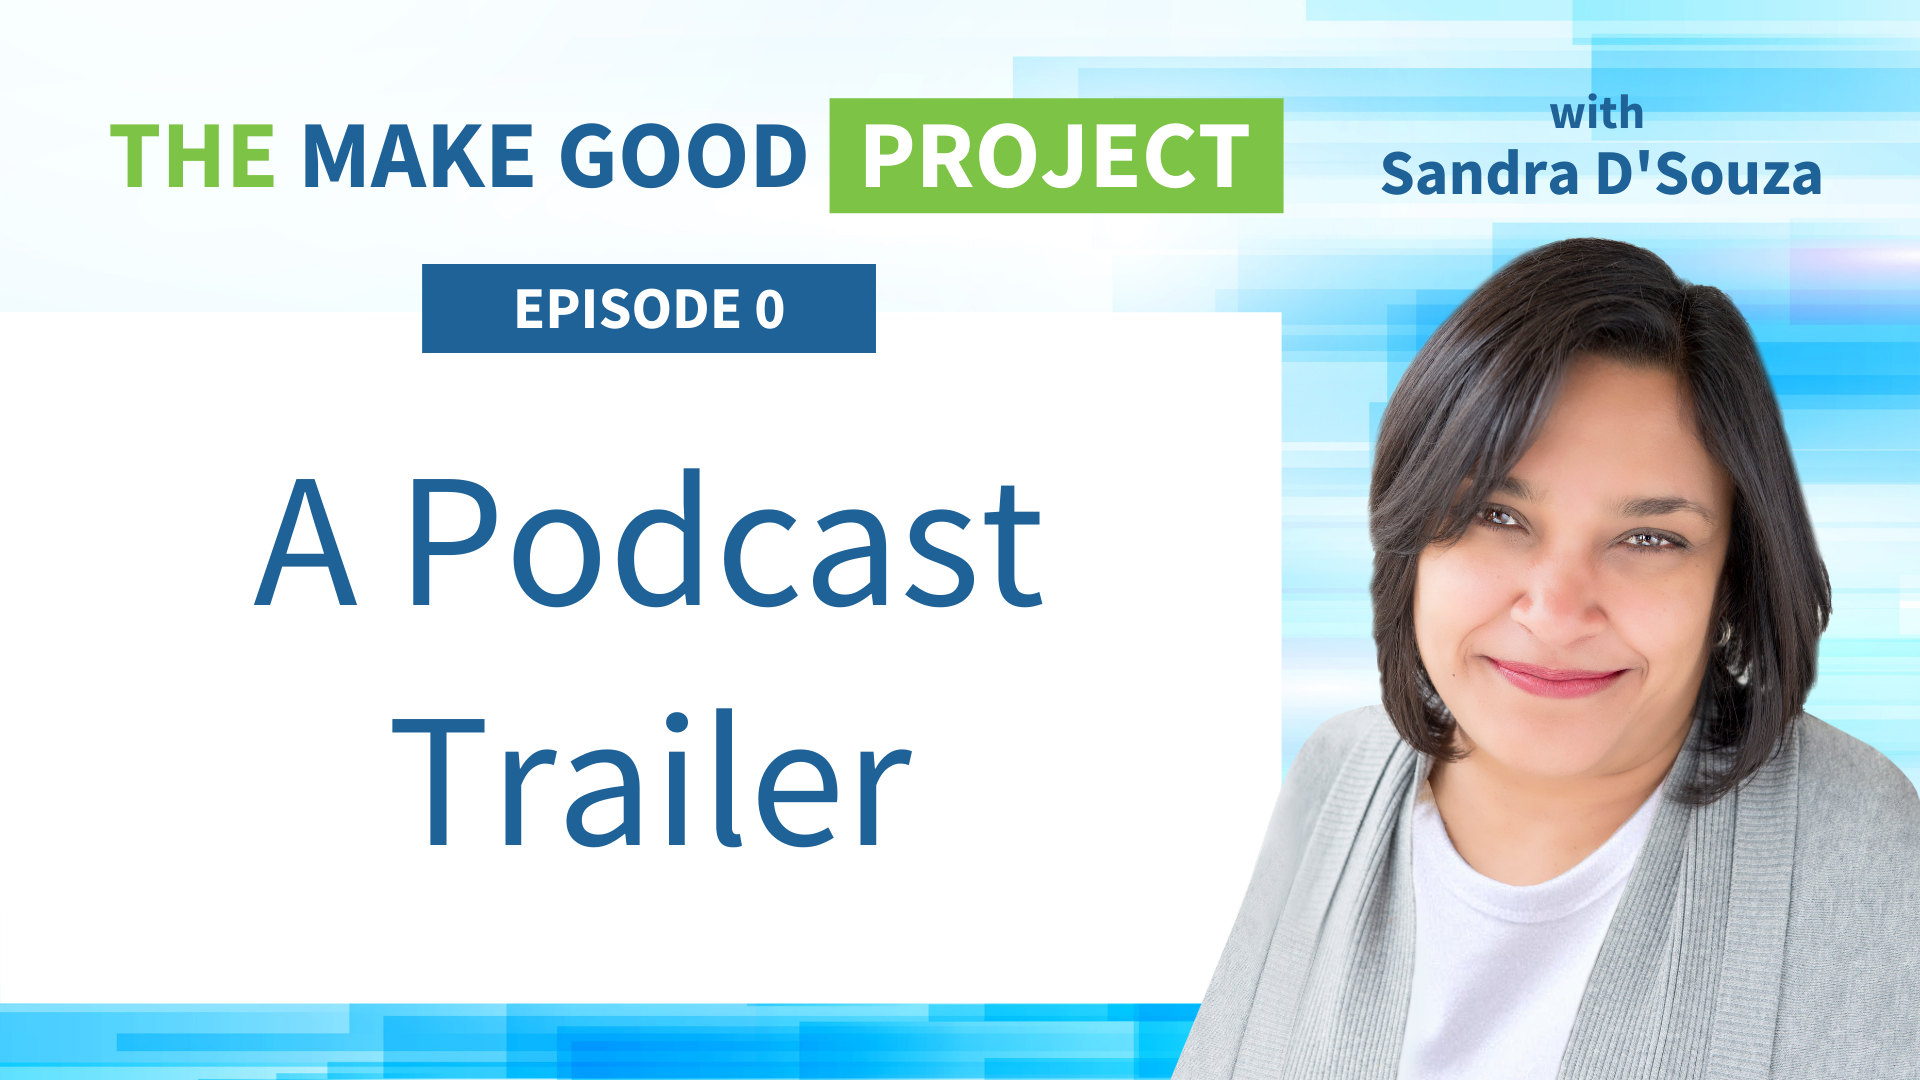 The Make Good Project: A Podcast Trailer